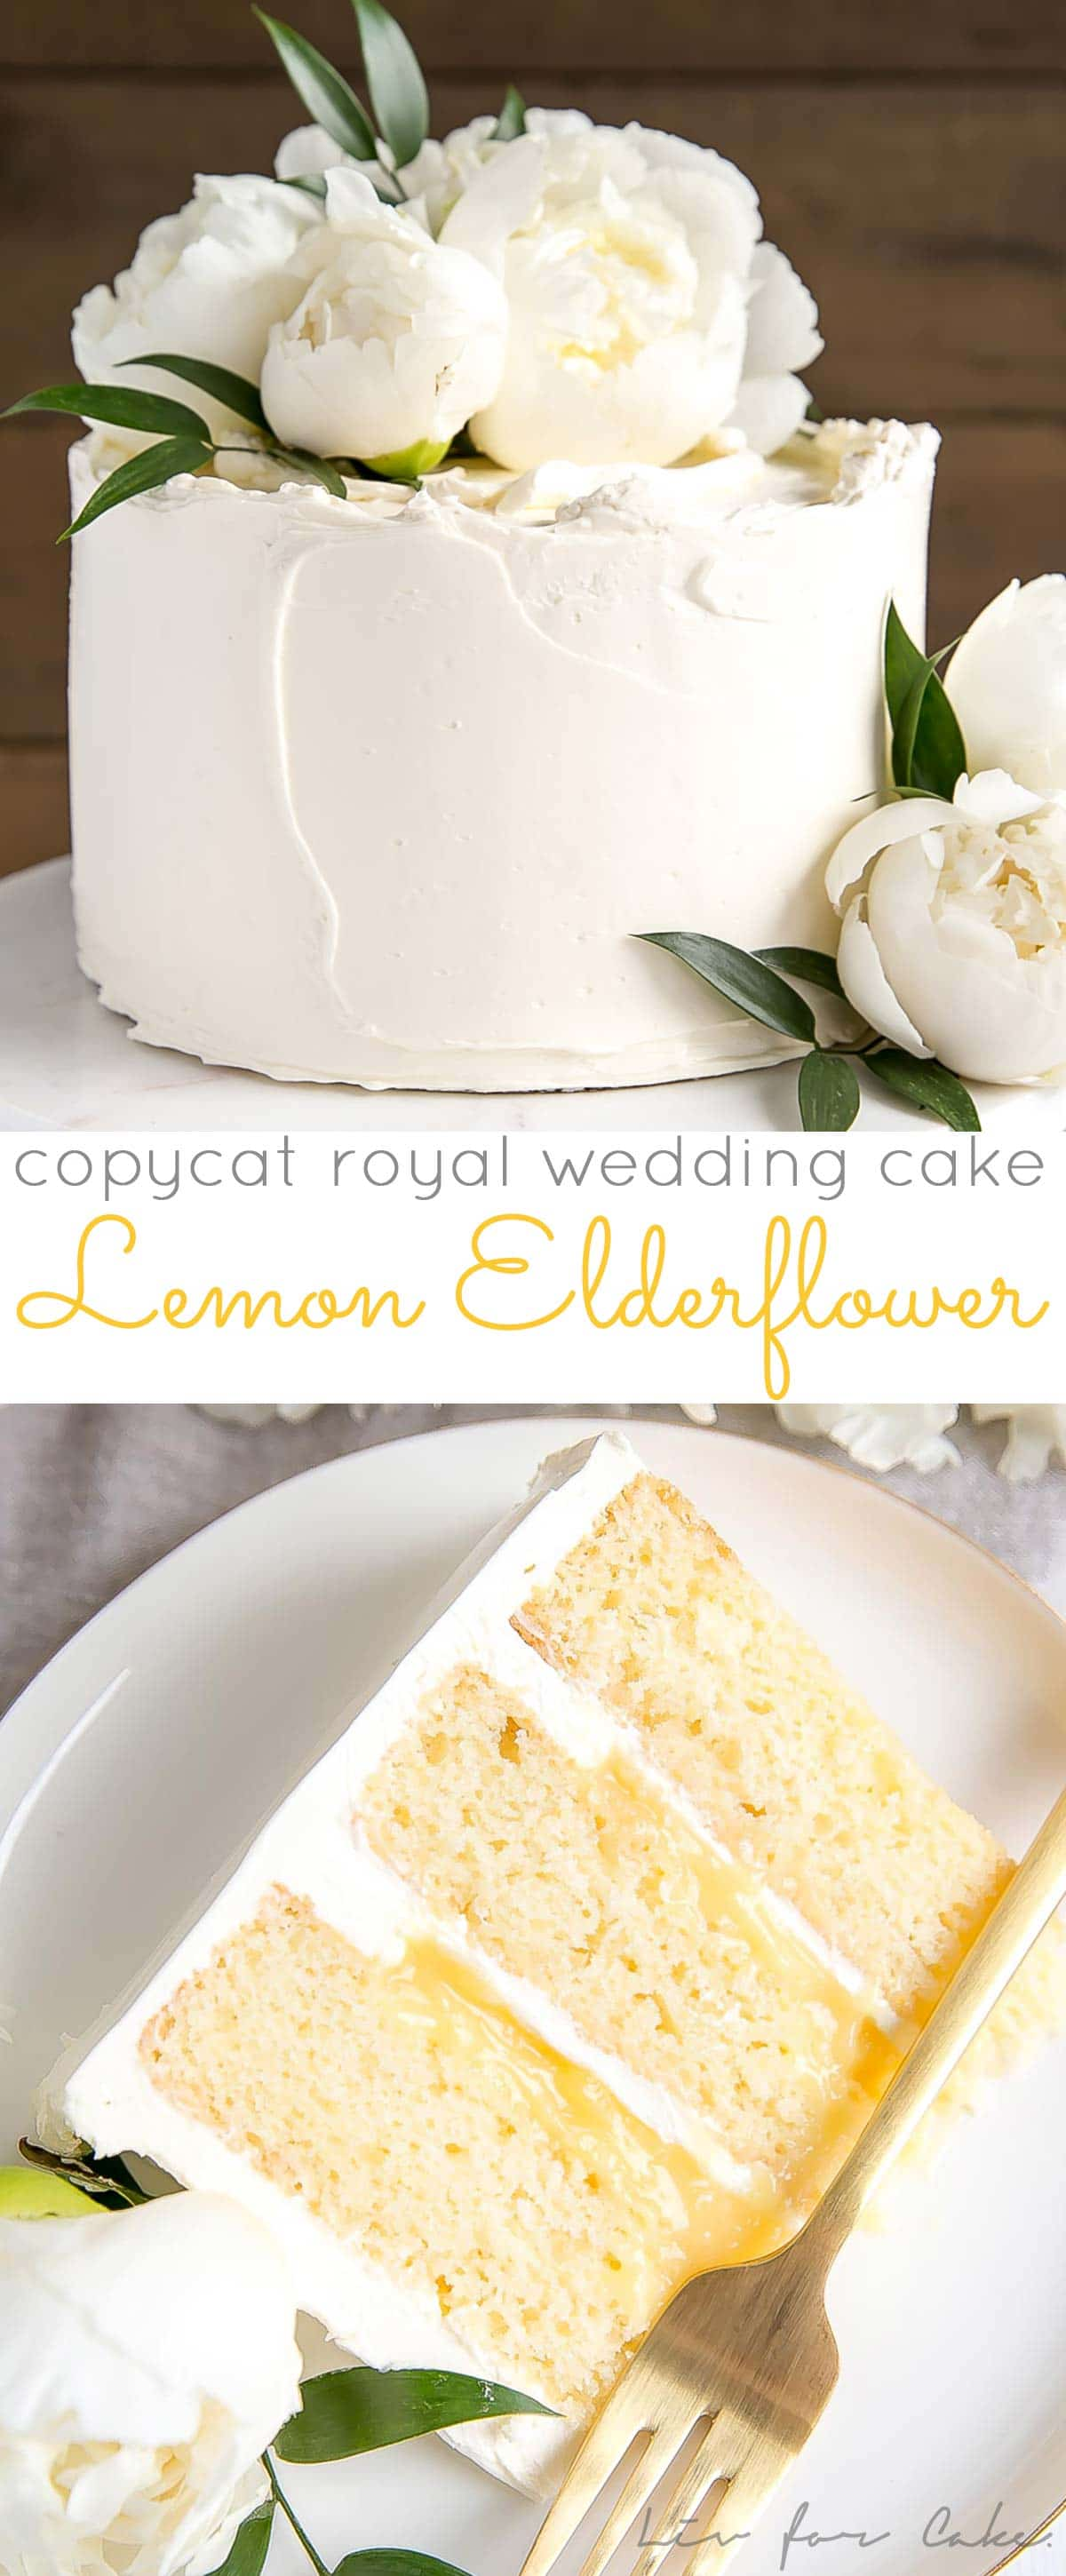 This Lemon Elderflower Cake is my copycat version of the royal wedding cake! Elderflower infused lemon cake layers with lemon curd and an elderflower buttercream. | livforcake.com